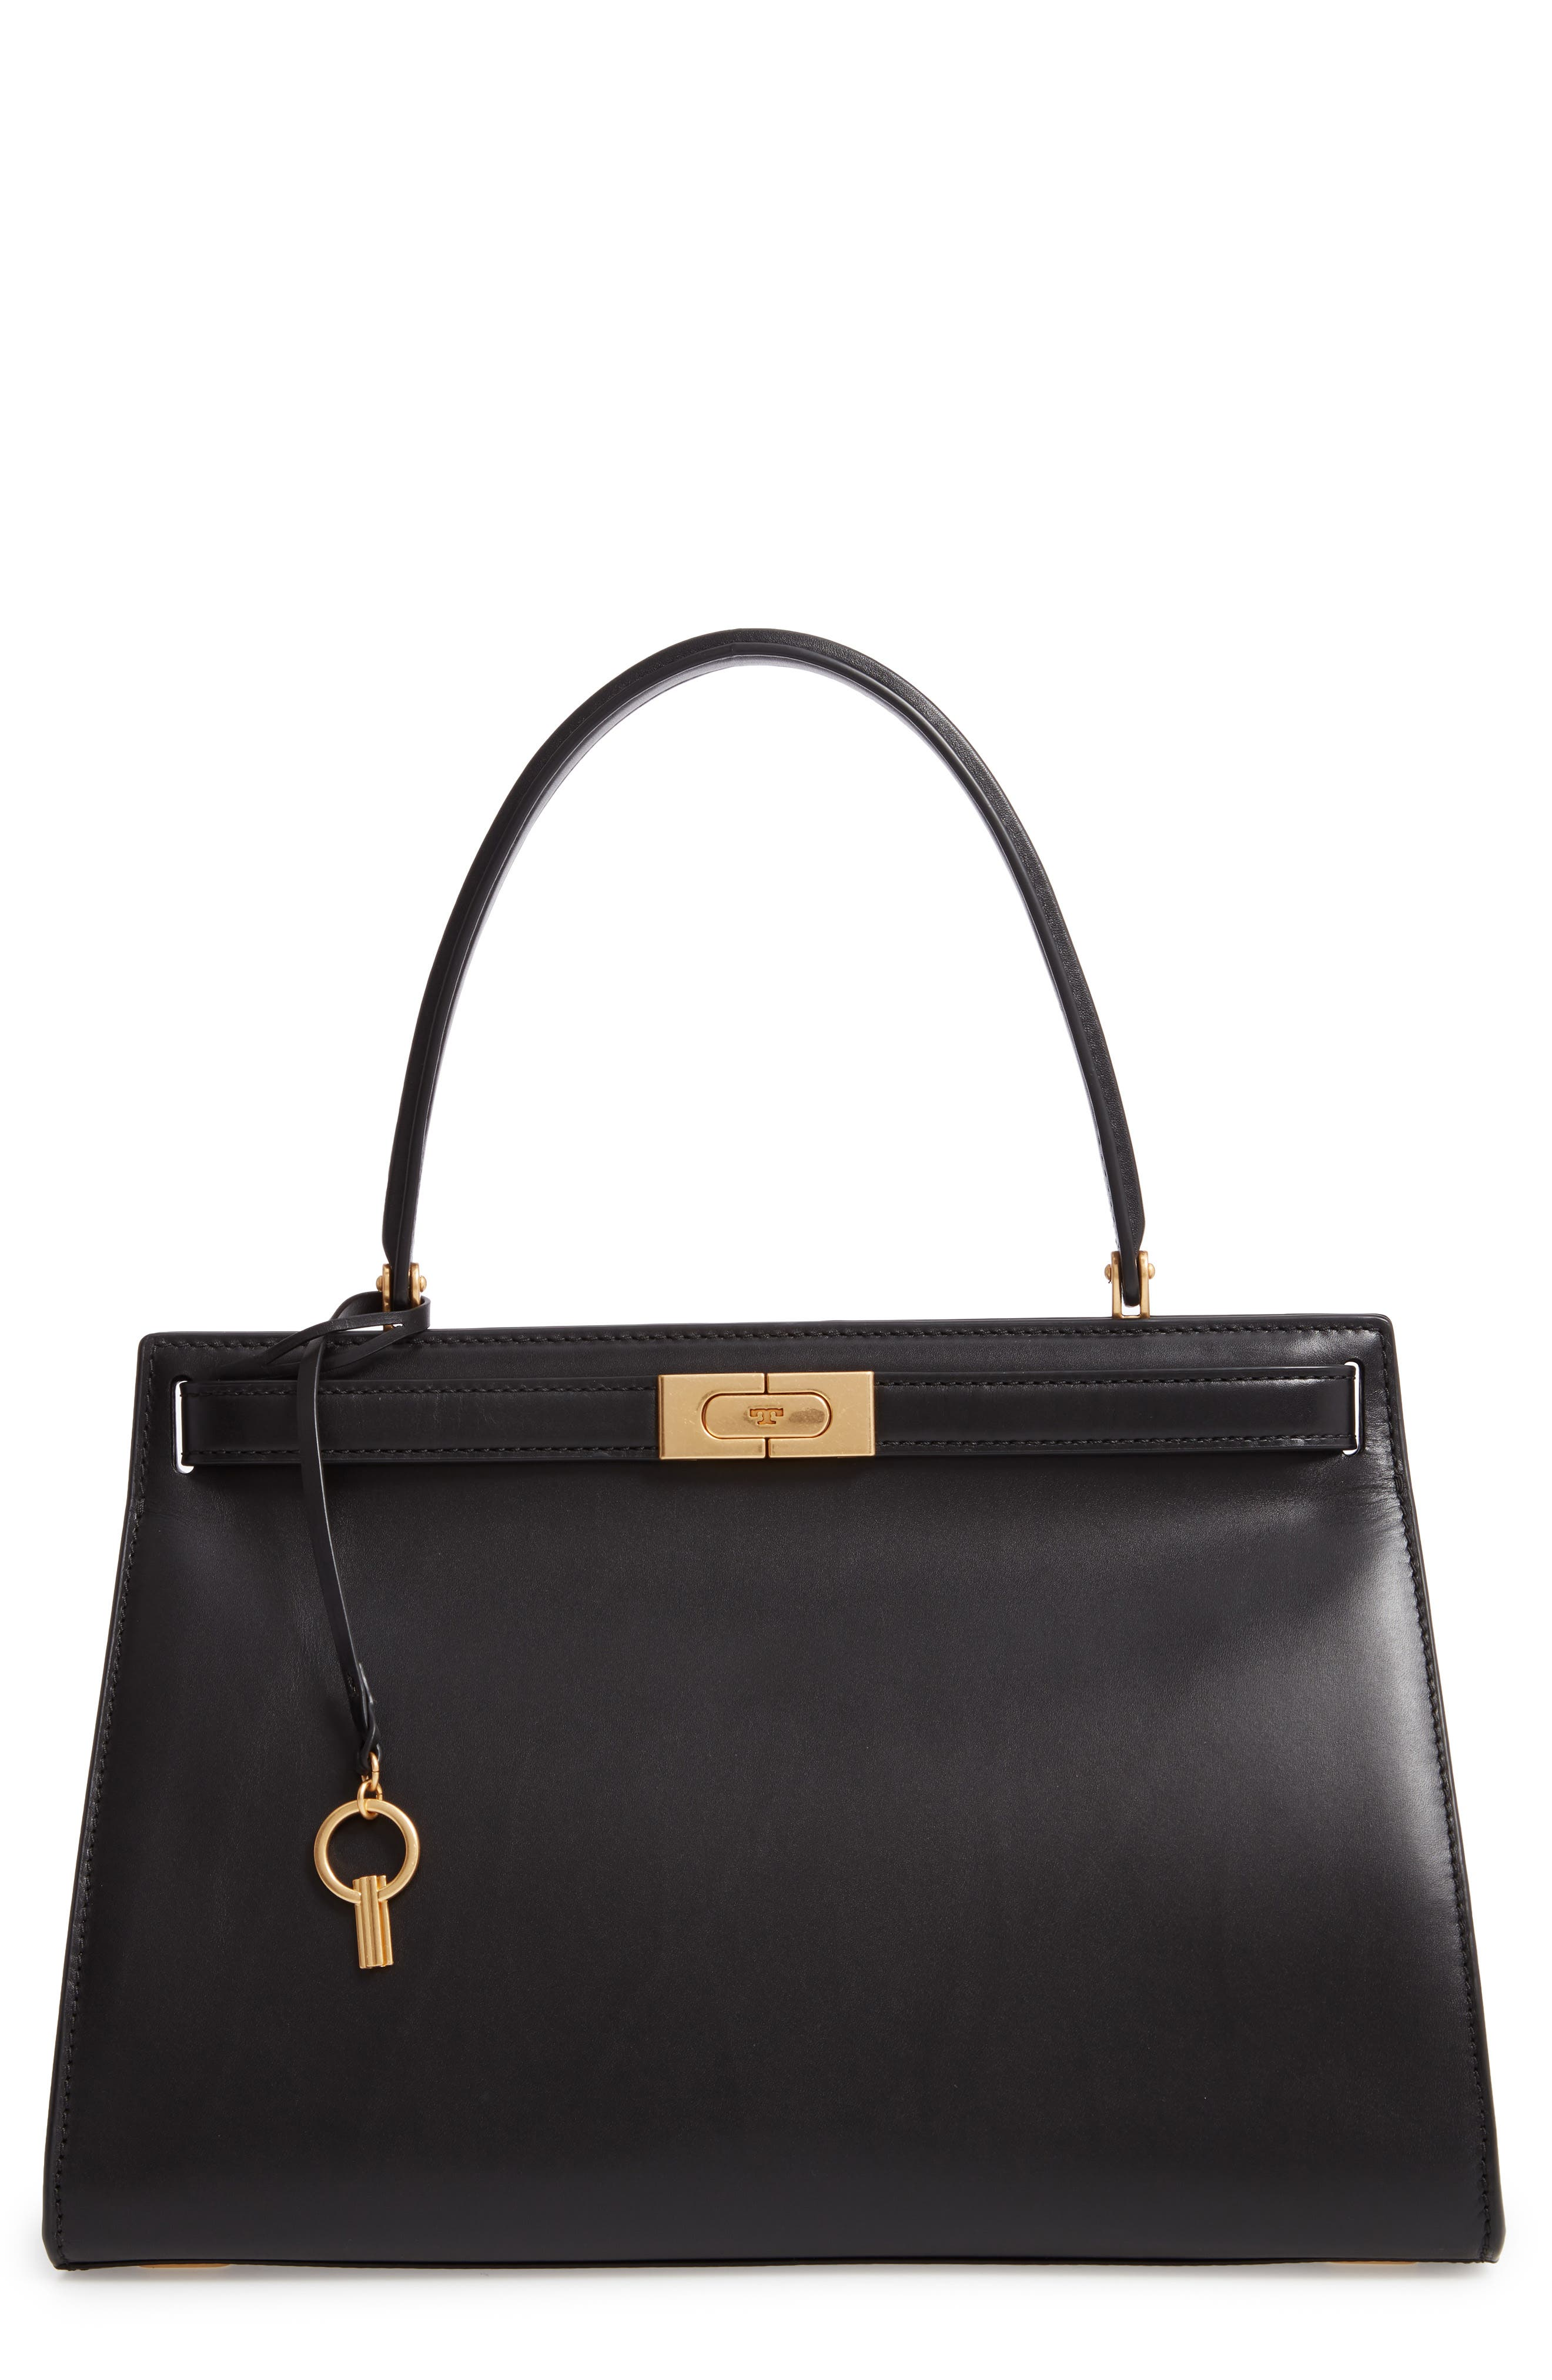 TORY BURCH, Lee Radziwill Leather Bag, Main thumbnail 1, color, 001